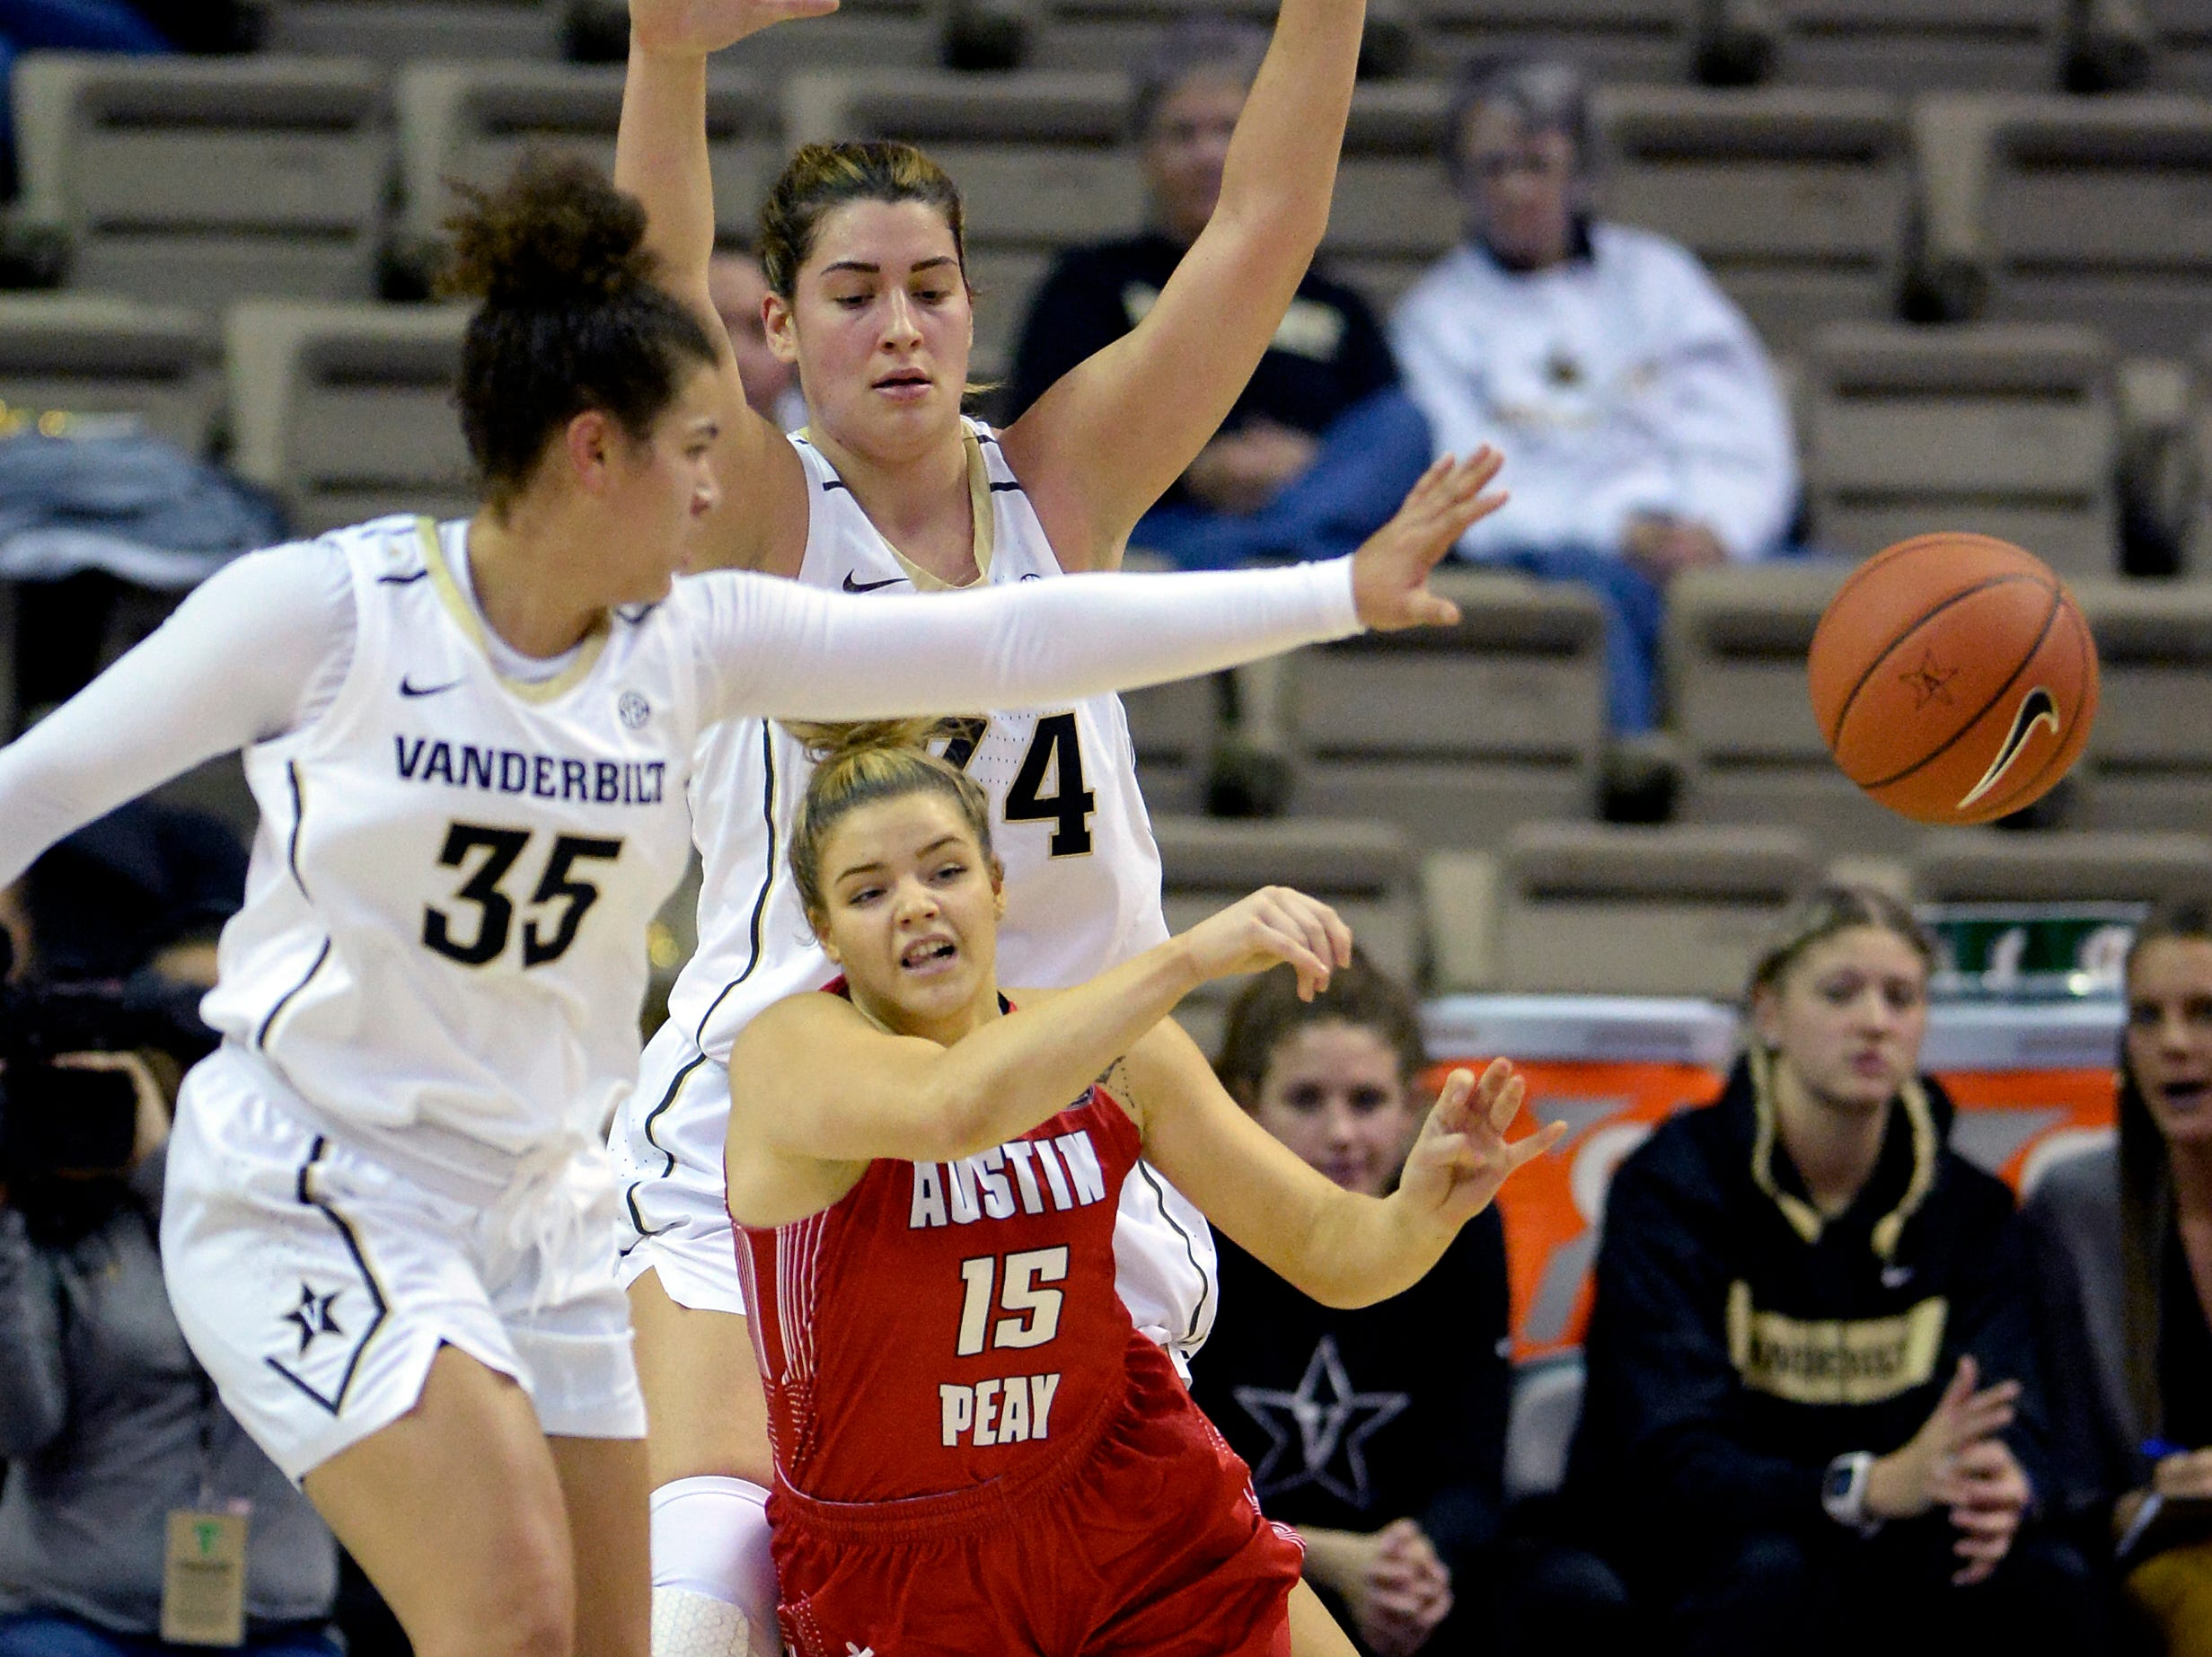 Austin Peay guard Kasey Kidwell (15) passes the ball as she is defended by Vanderbilt guard Kaleigh Clemons-Green (35) and forward Mariella Fasoula (34) during the first half of an NCAA college basketball game Monday, Nov. 12, 2018, in Nashville, Tenn.